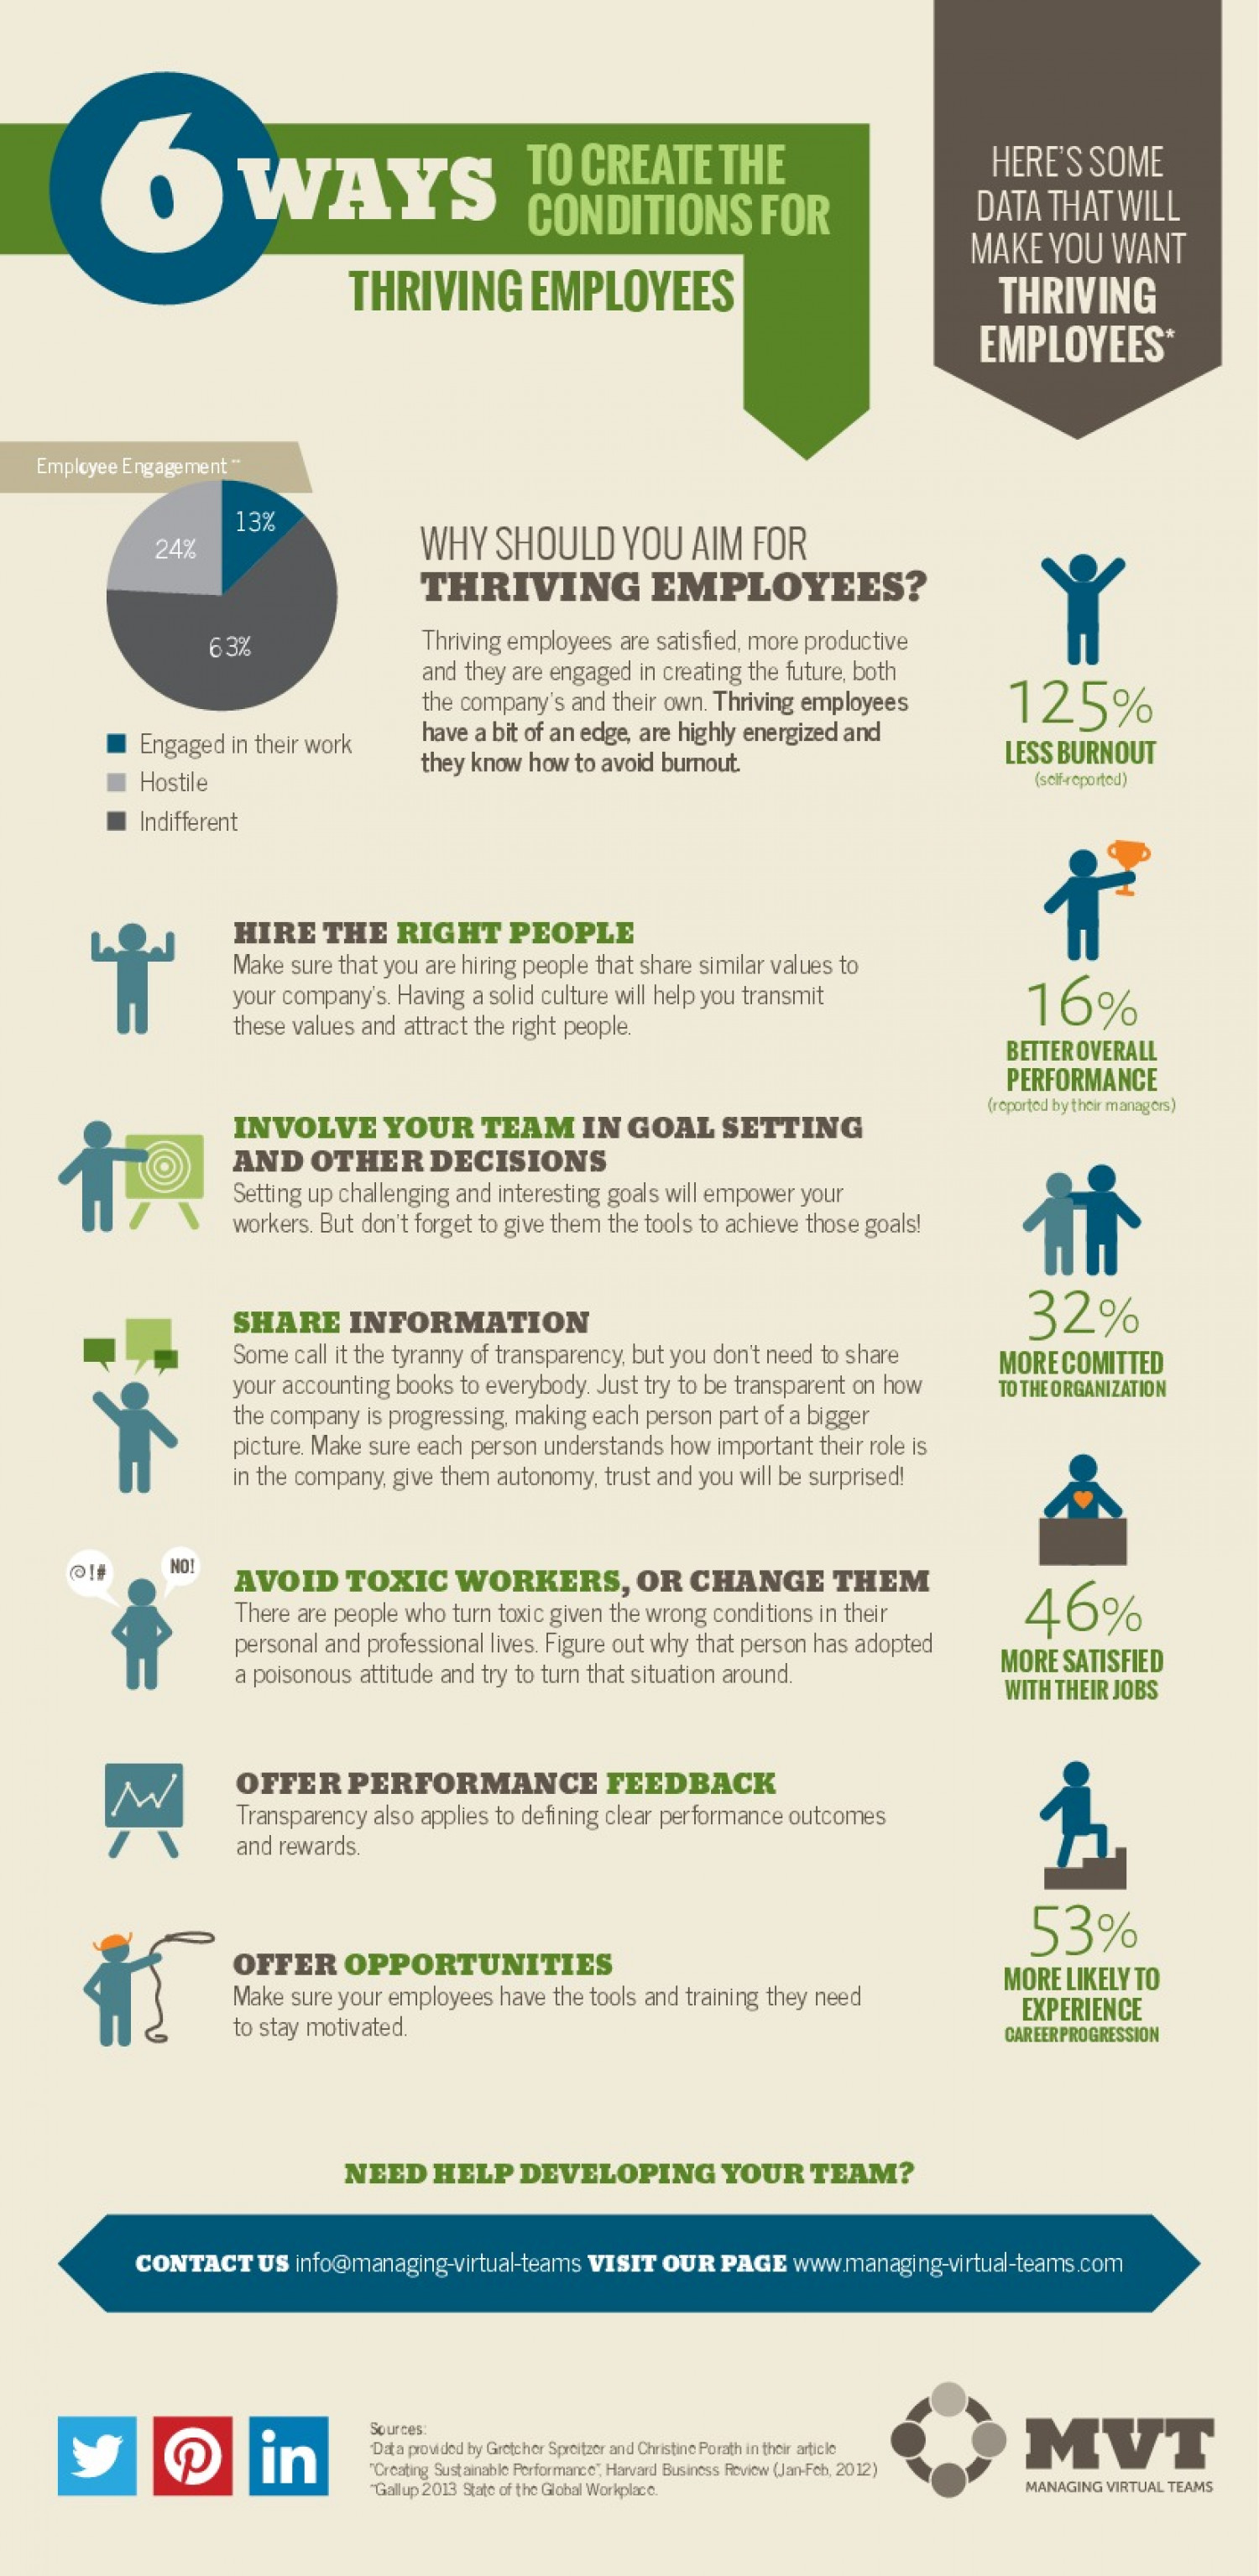 6 ways to create the conditions for Thriving employees Infographic